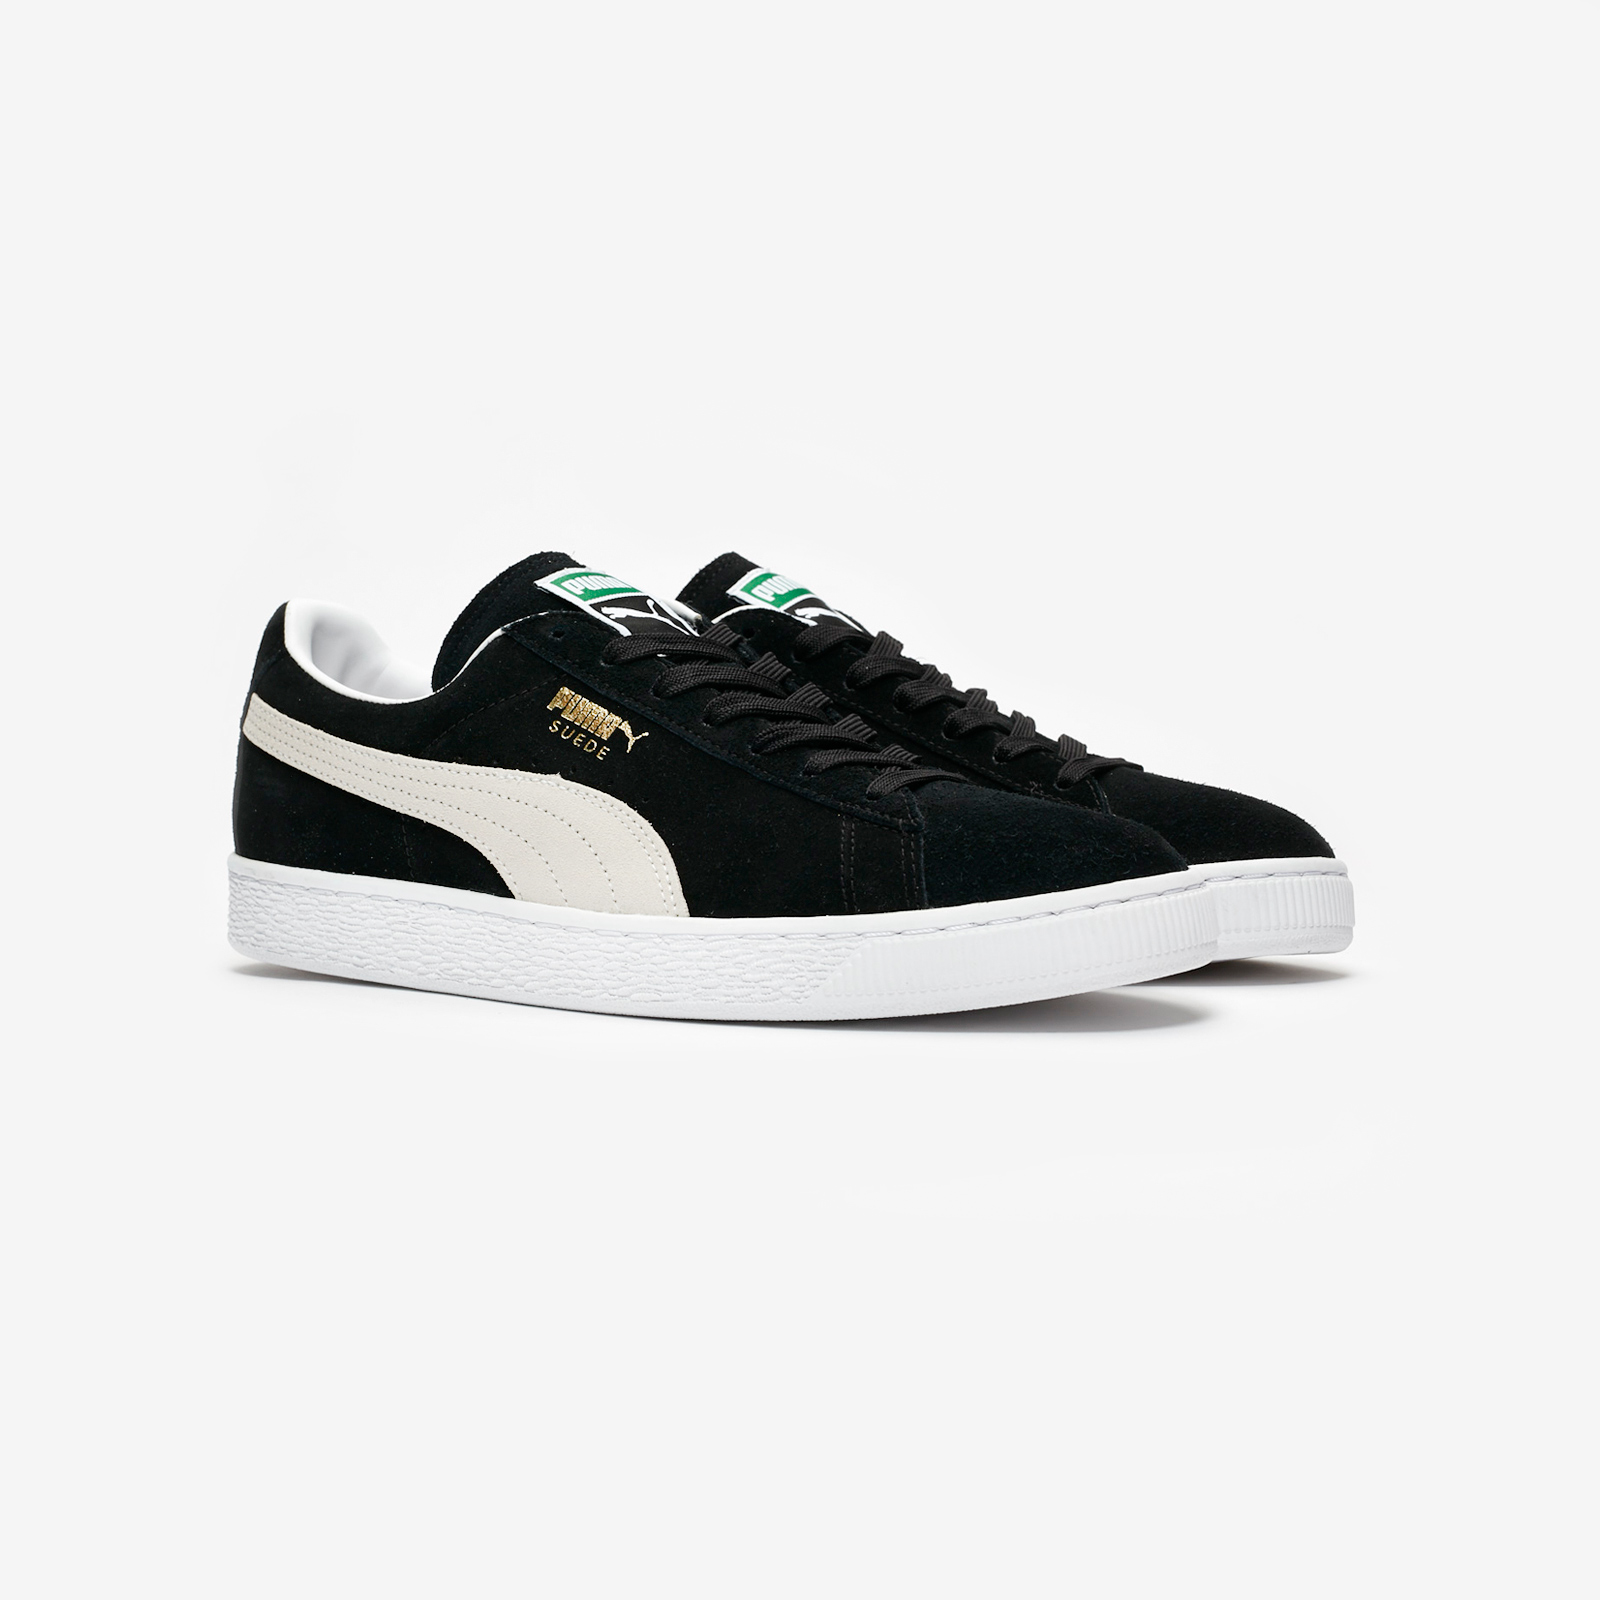 newest a3540 02443 Puma Suede Classic+ - 352634-03 - Sneakersnstuff | sneakers ...